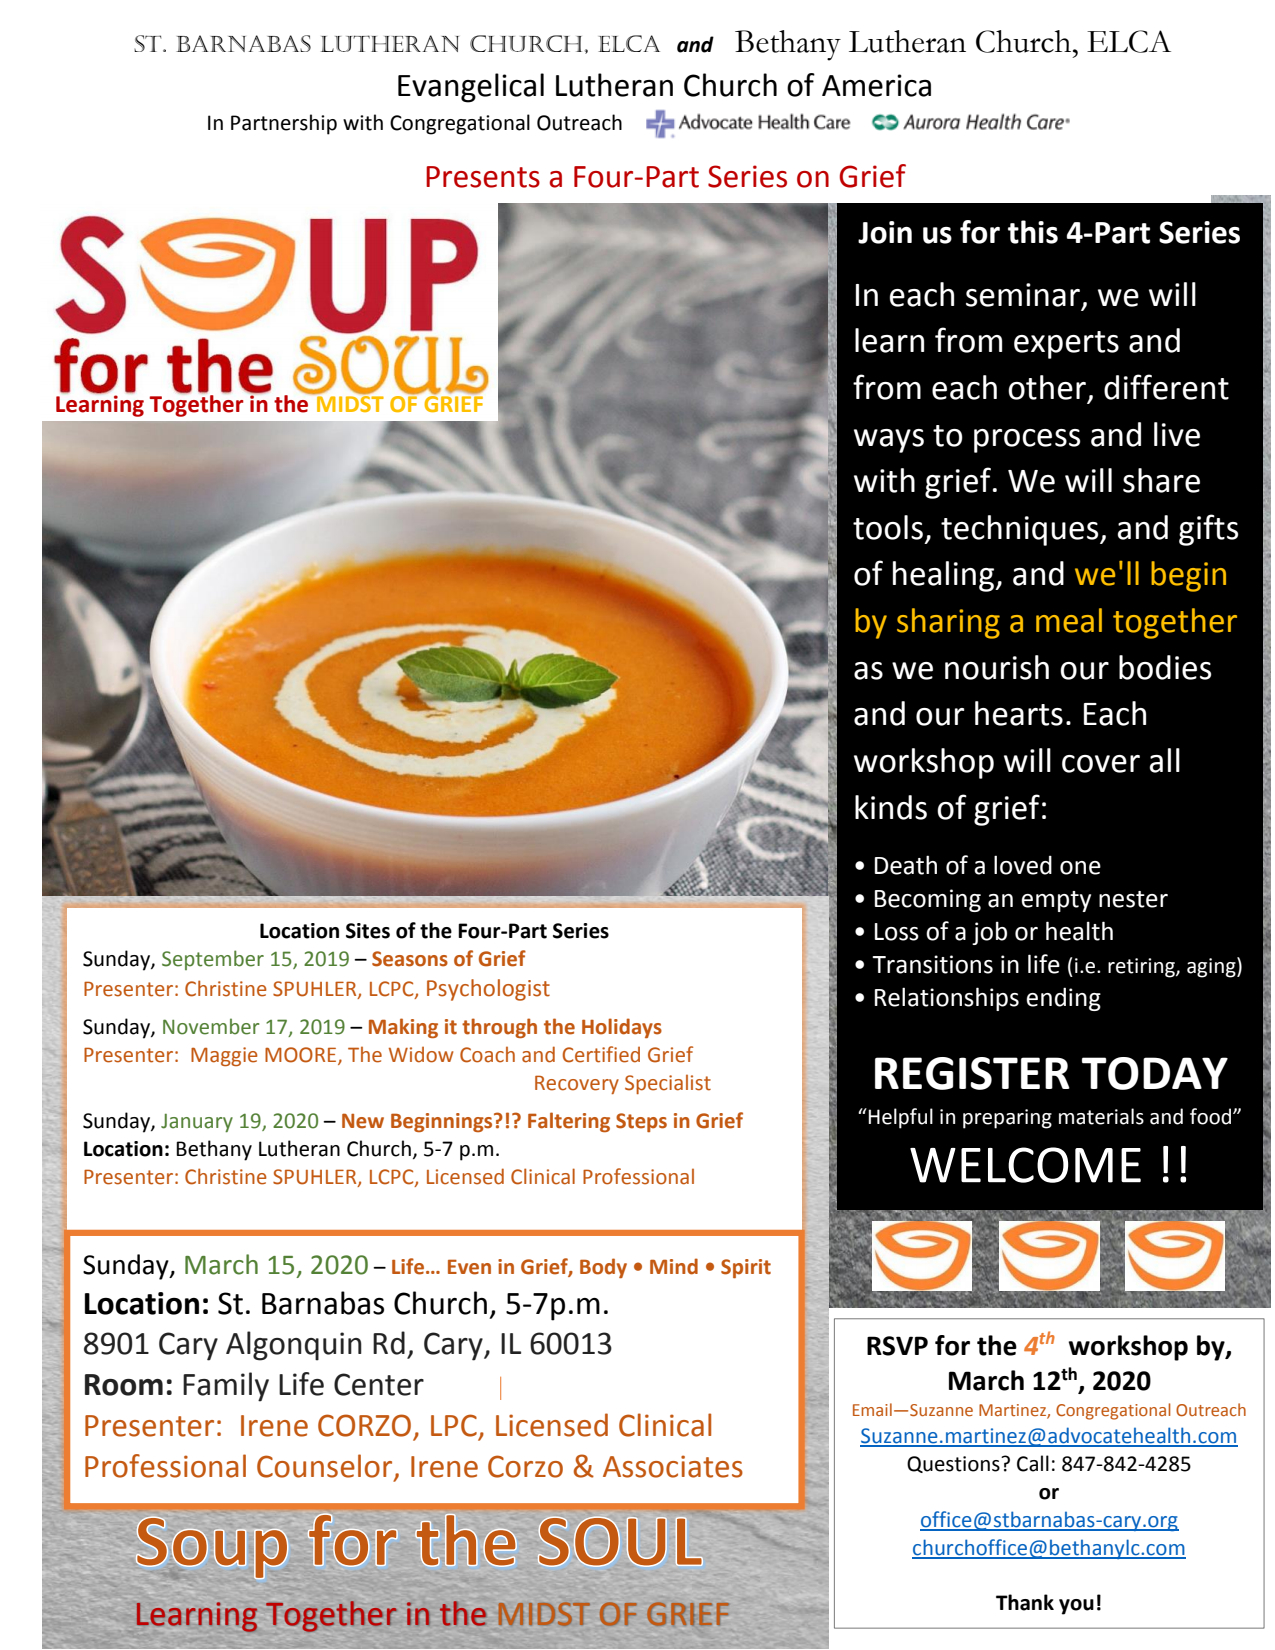 Soup for the soul series 3 15 20 xwmuad